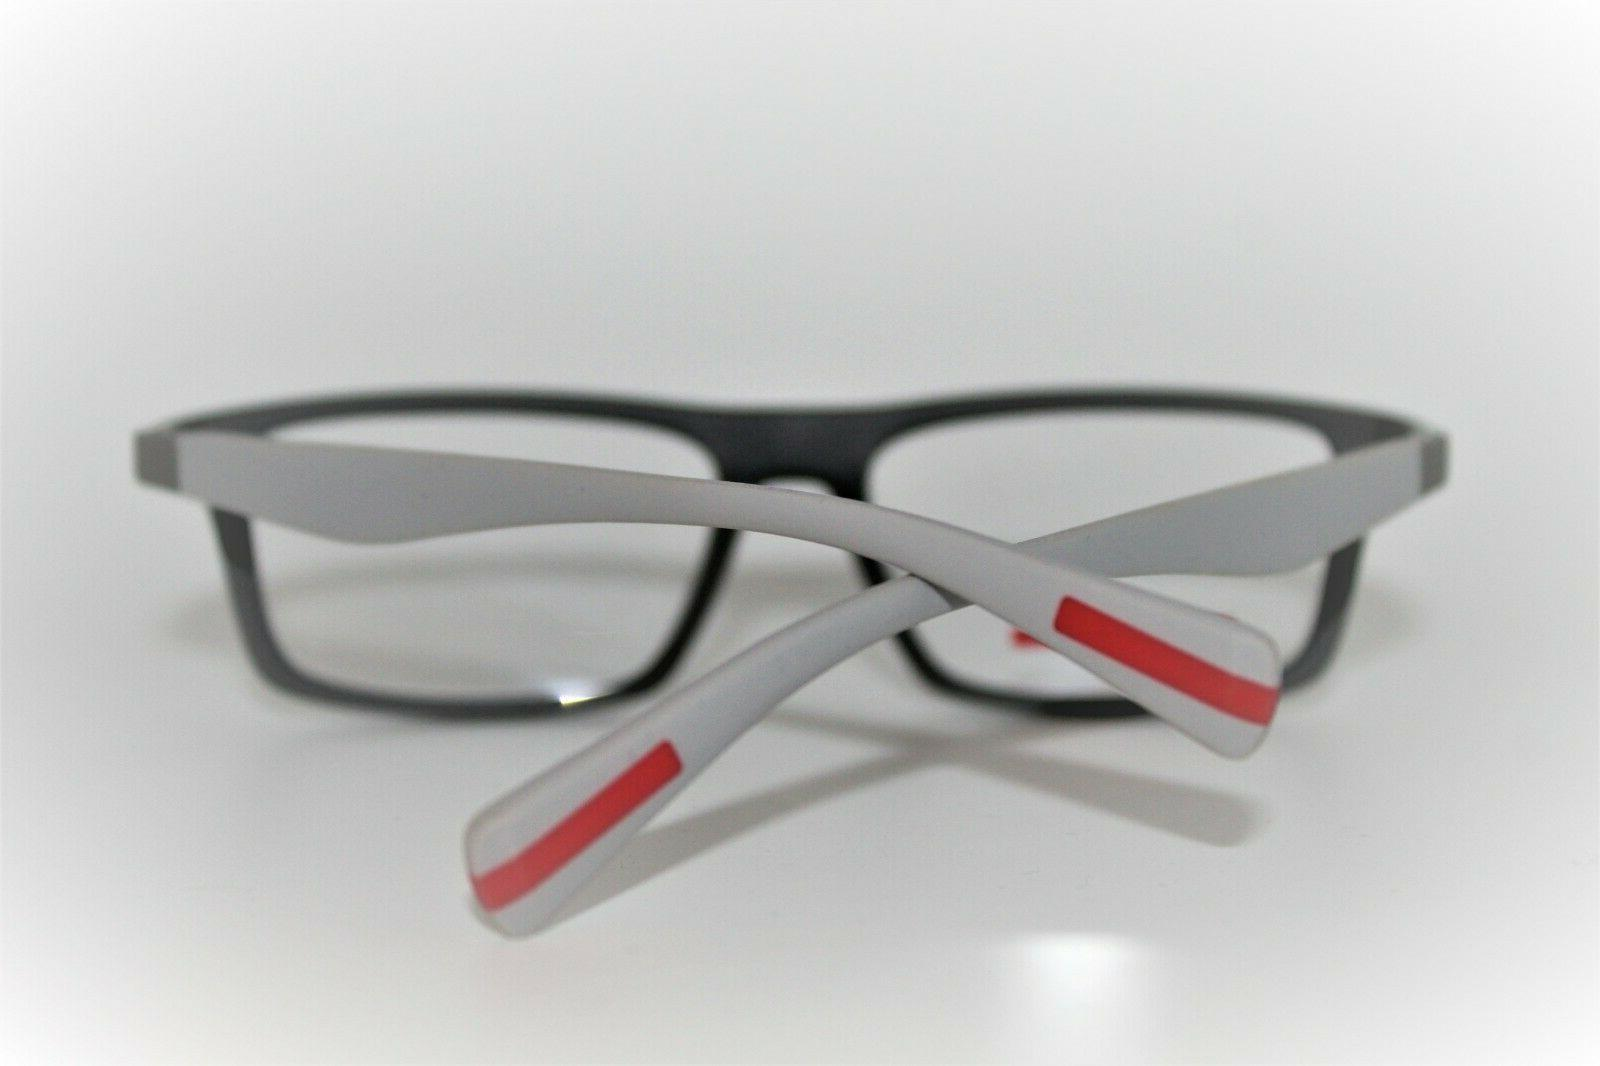 NEW SPORT VPS 02F GREY AUTHENTIC EYEGLASSES 56MM RX